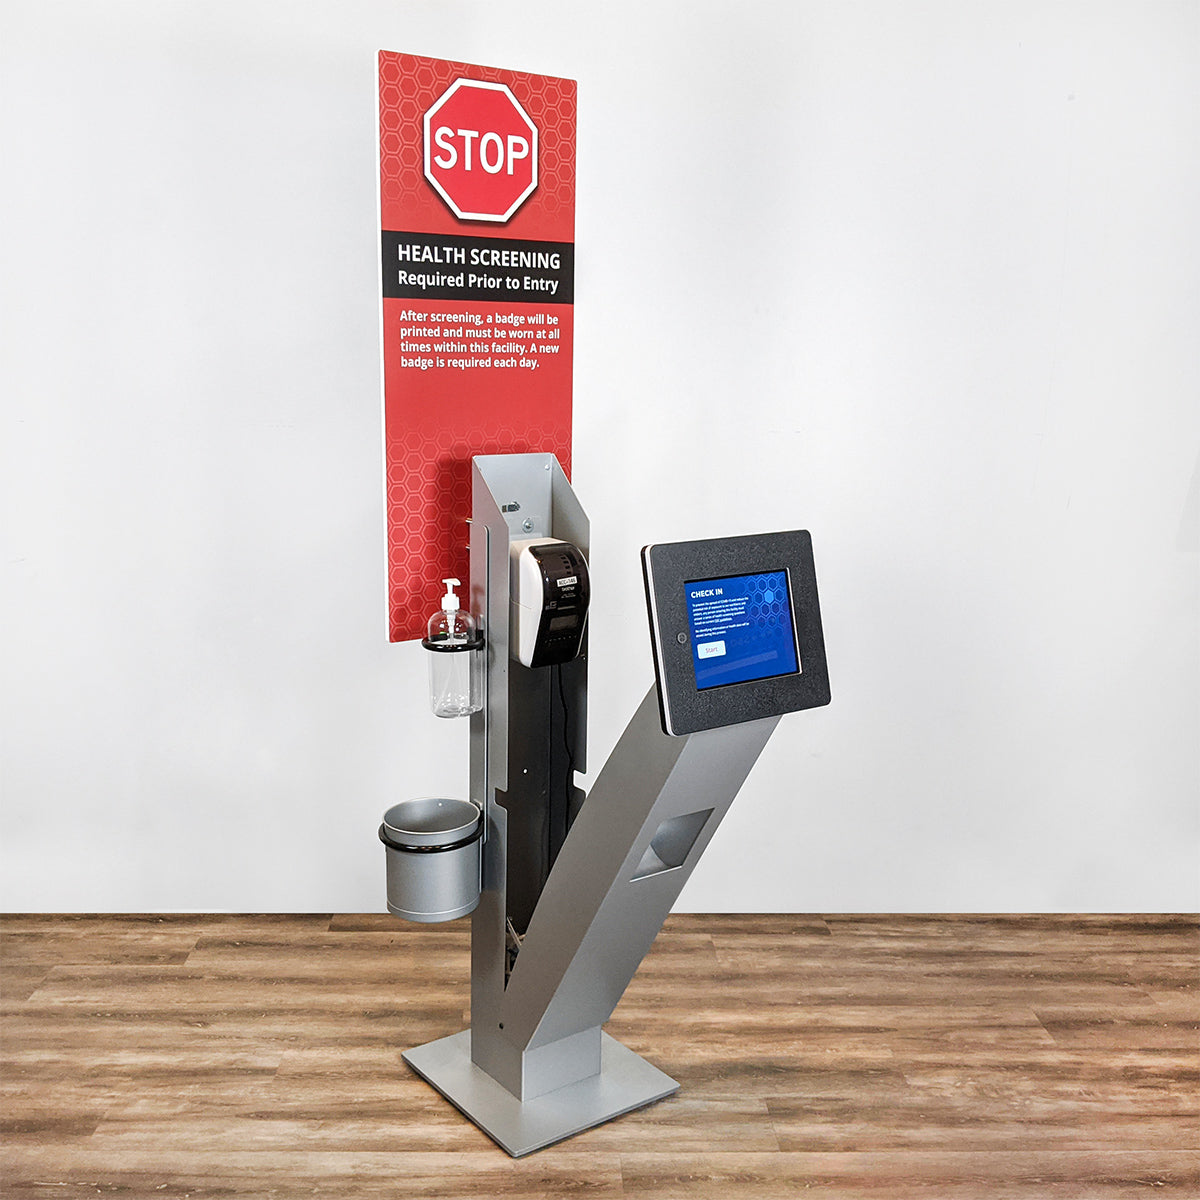 The Roo printer kiosk opens on a hinge to allow easy access to the printer and interior components.